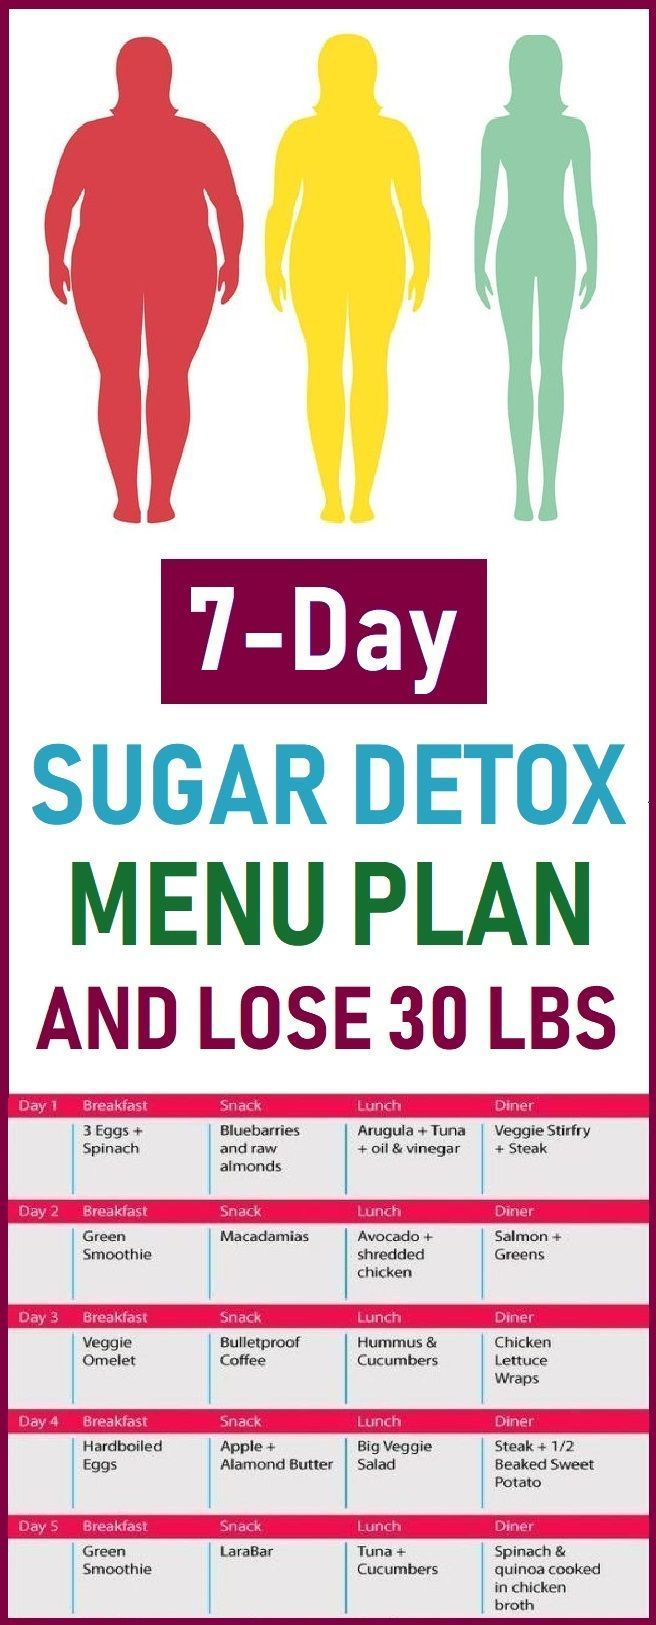 Mixed Detox Diet 3 Tage Dr. Oz #detoxtime #DetoxCleanseFood   - Detox Cleanse Food - #Cleanse #Detox #DetoxCleanseFood #detoxtime #Diet #Food #Mixed #Tage #sugardetoxplan